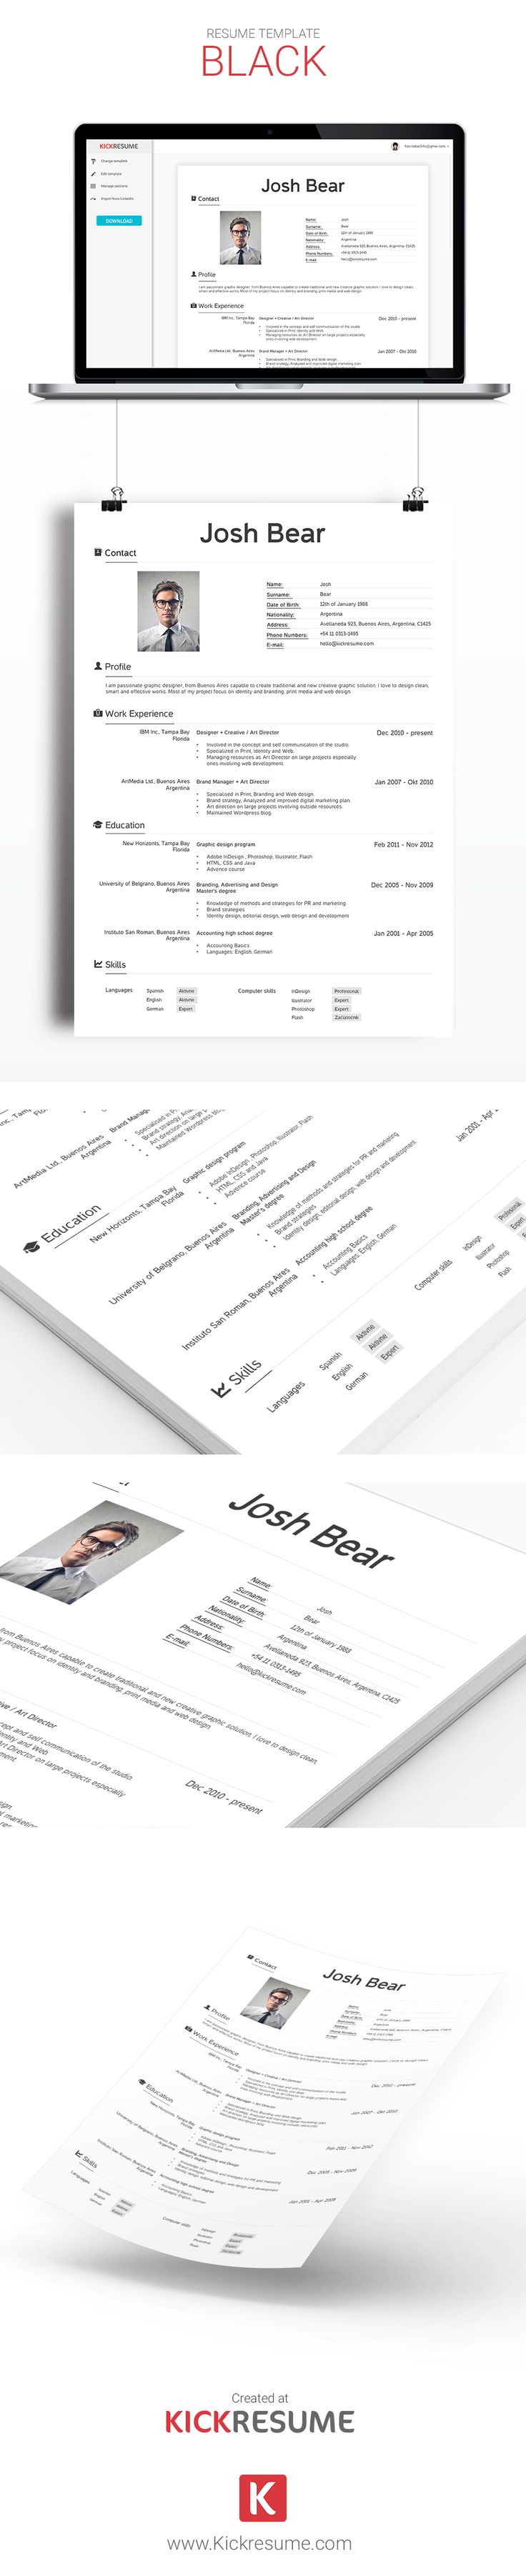 find this pin and more on kickresume templates gallery resume samples resume templates cover letter samples